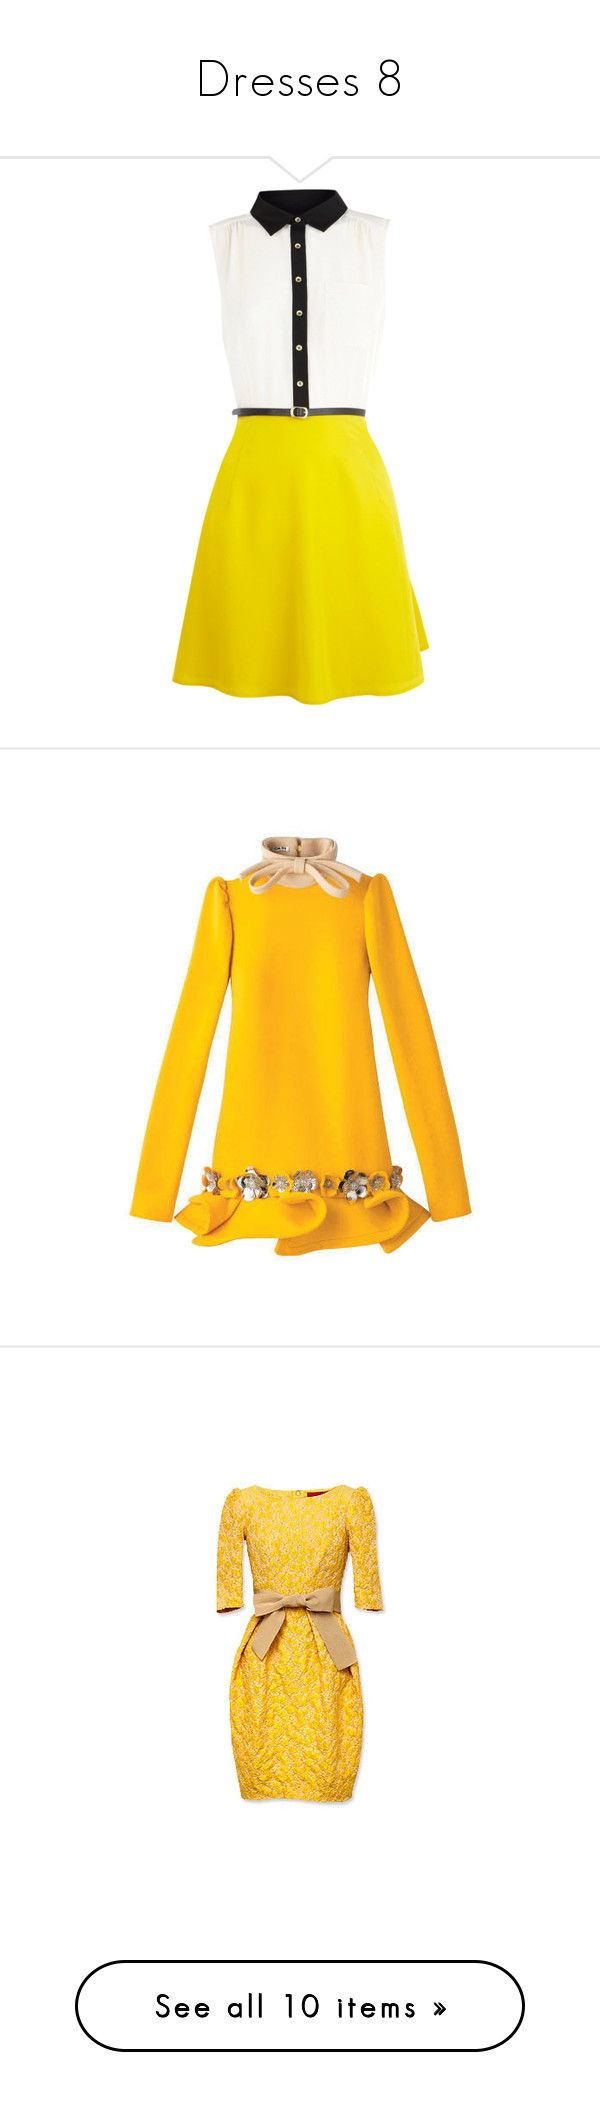 """""""Dresses 8"""" by vicipokemon ❤ liked on Polyvore featuring dresses, vestidos, yellow, short dresses, women, button-down shirt dresses, shirt dress, yellow dress, flared skirt and circle skirt"""